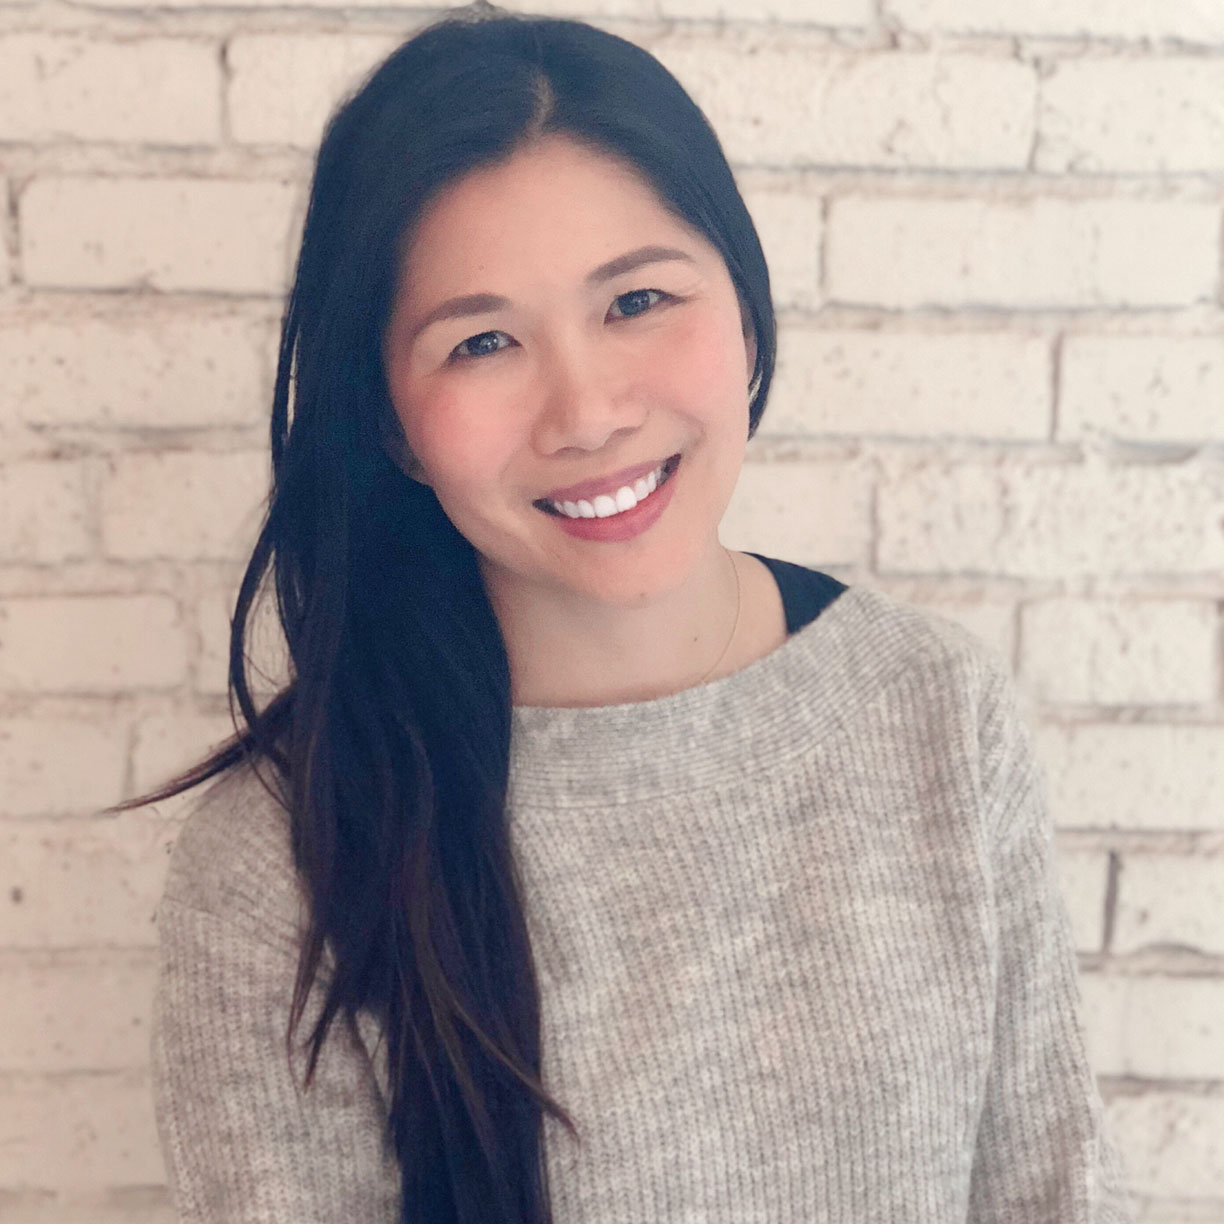 Photo of Audrey Siu, CEO and Founder of VEQUE